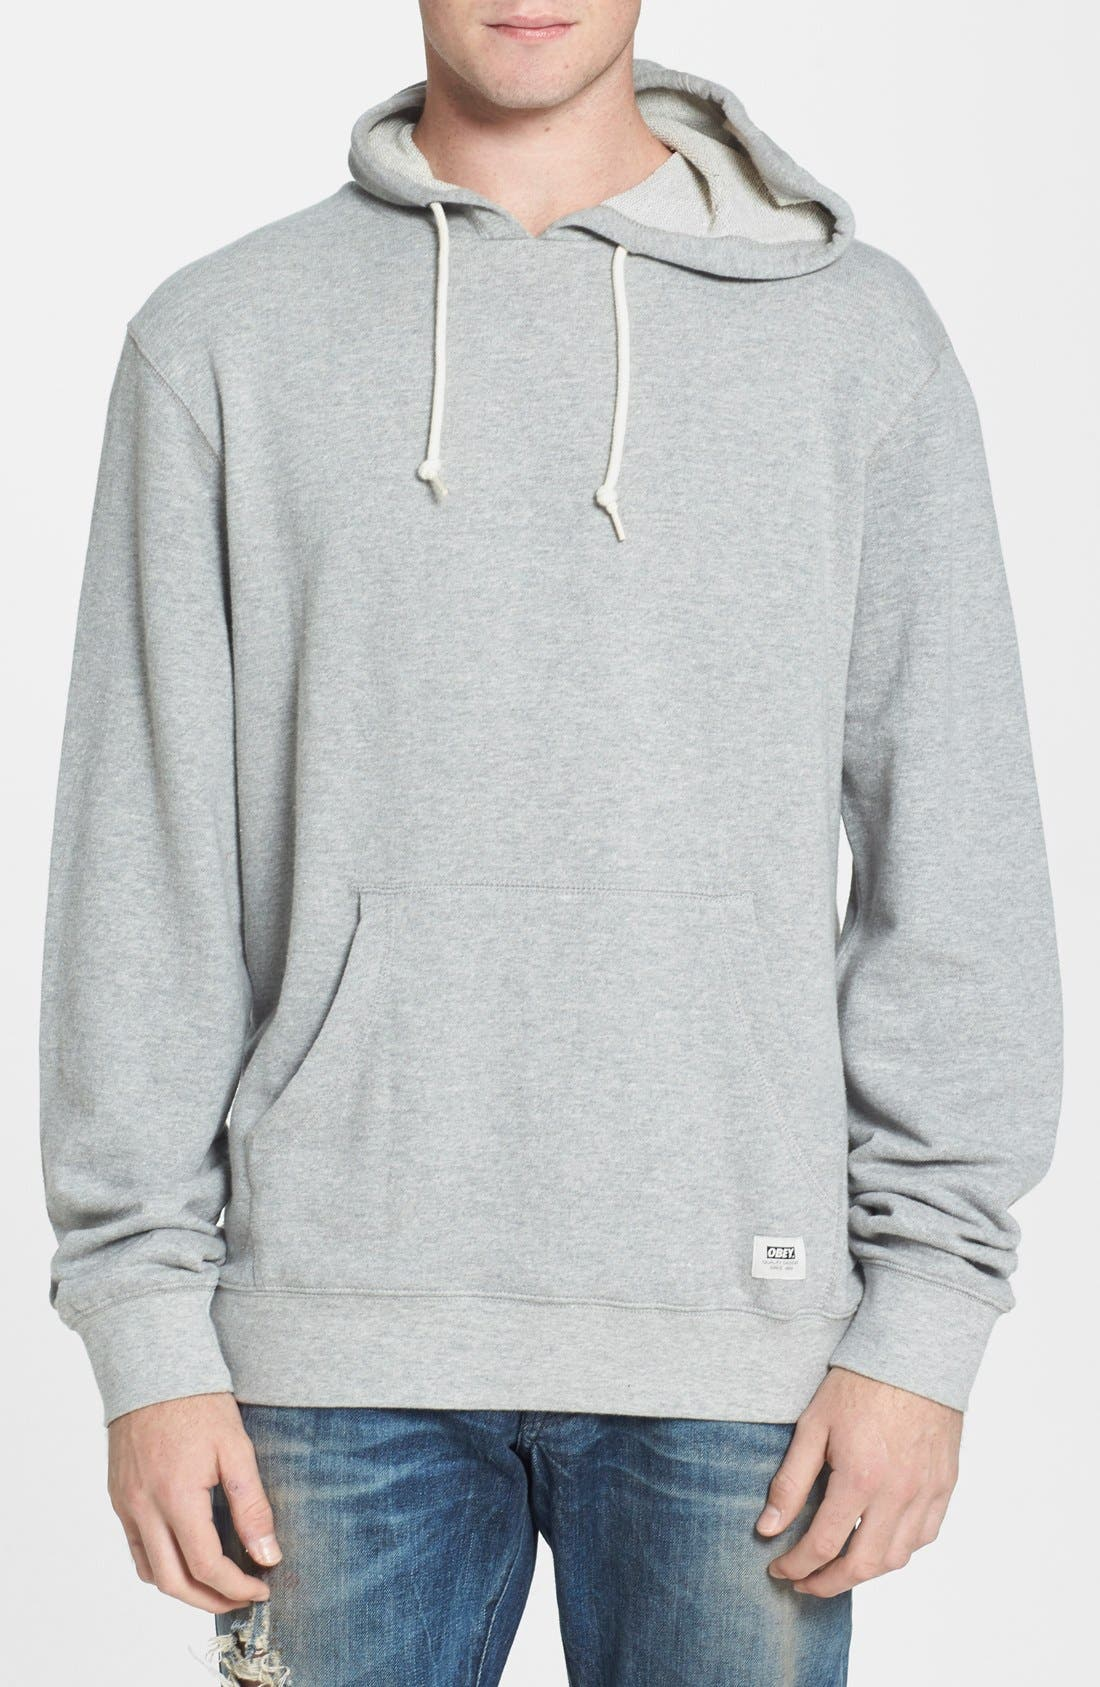 'Dissent' Hoodie,                             Main thumbnail 1, color,                             060